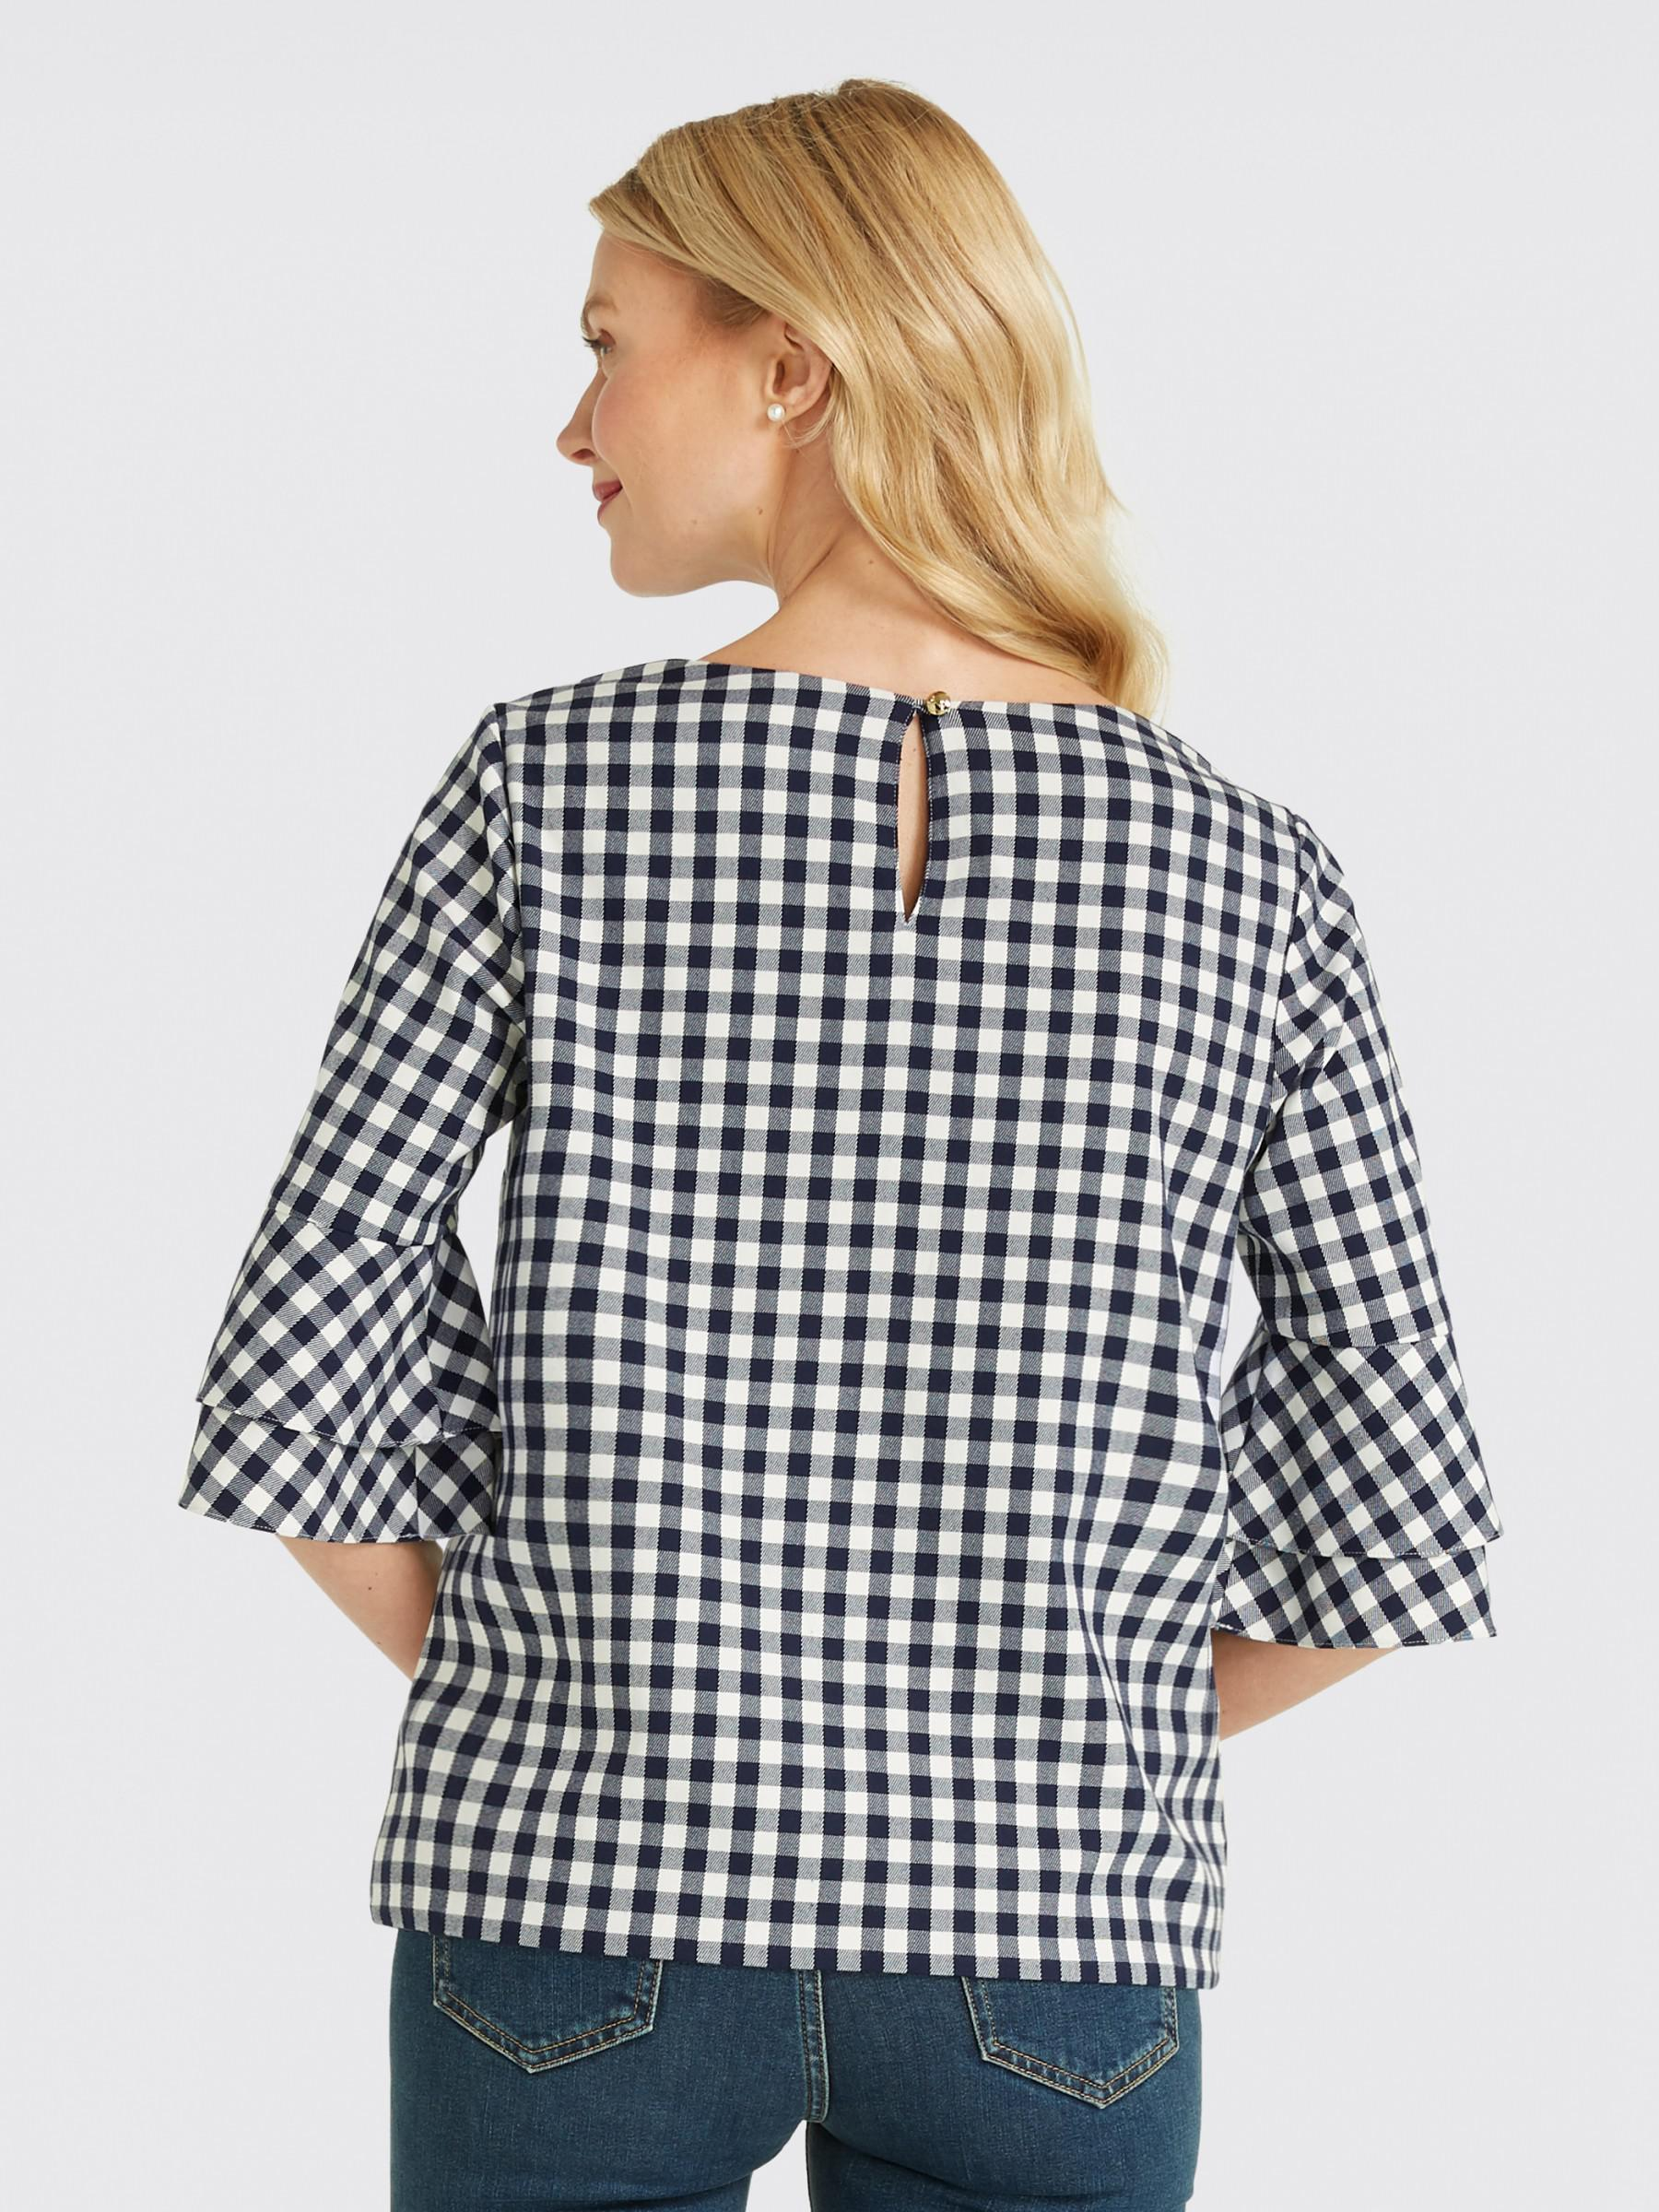 8379254c18b Lyst - Draper James Gingham Bell Sleeve Top in Blue